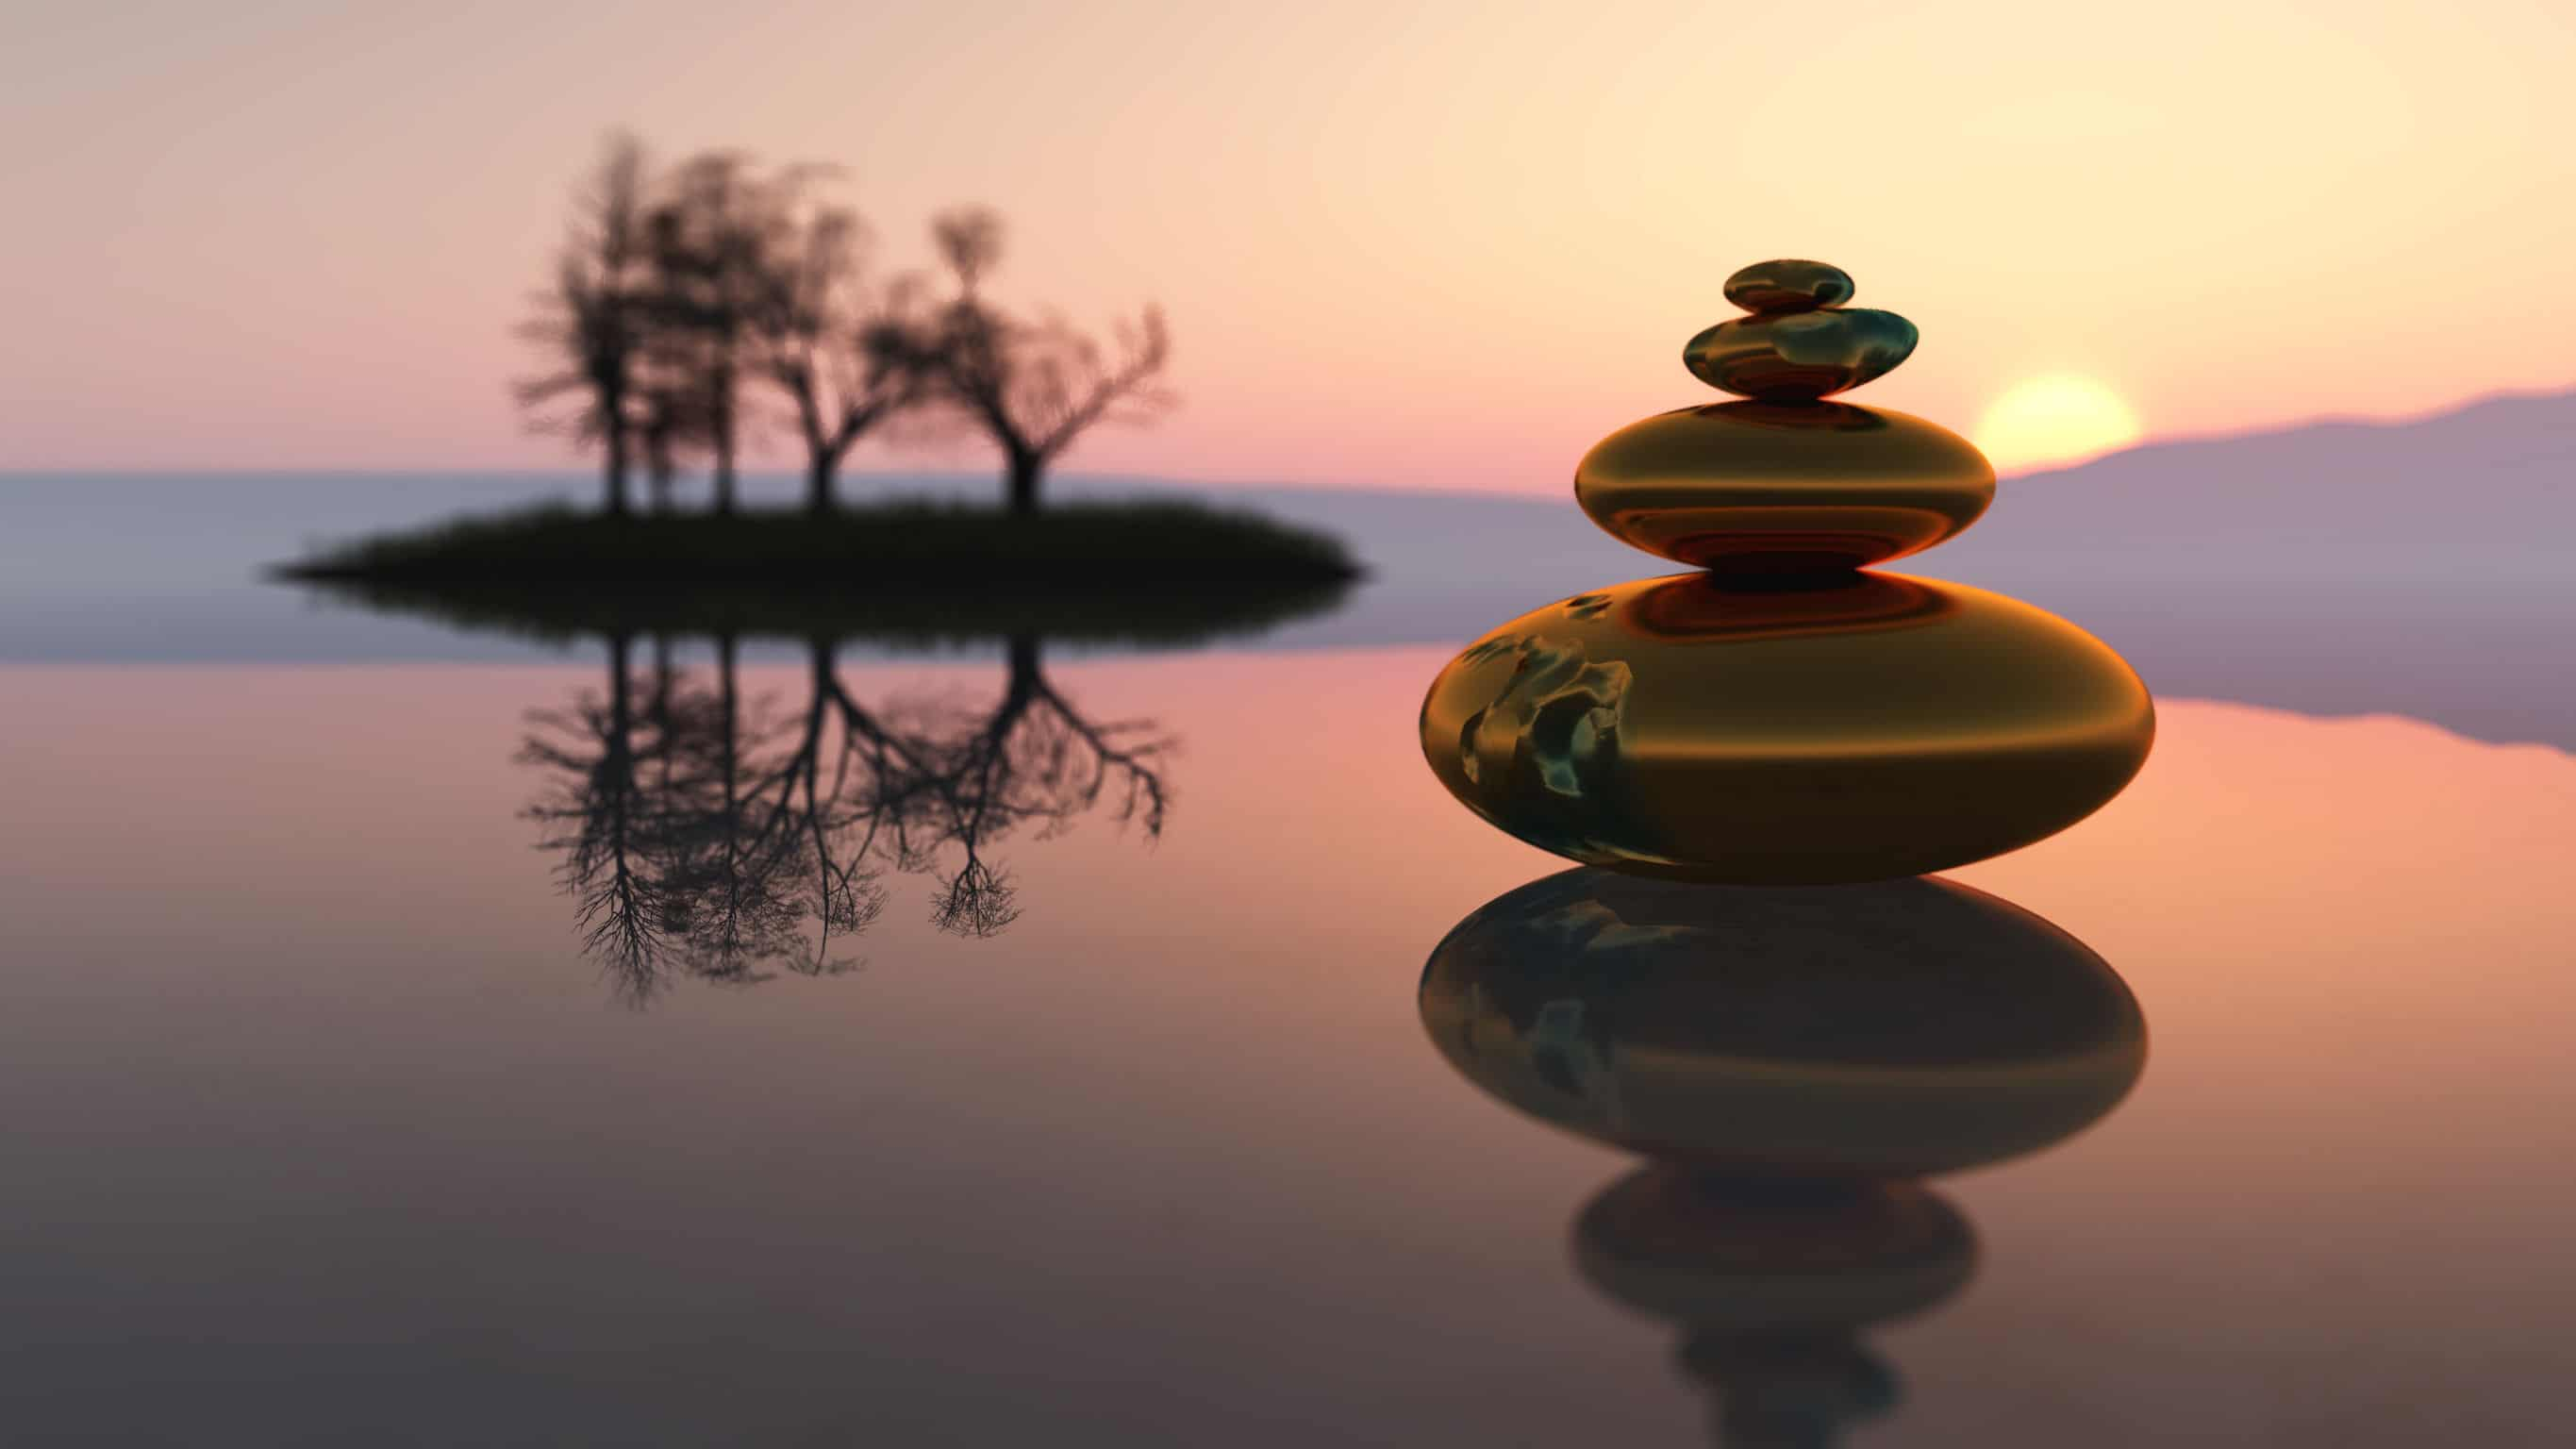 The Quiet Mind – What Makes Meditation Universally Appealing?